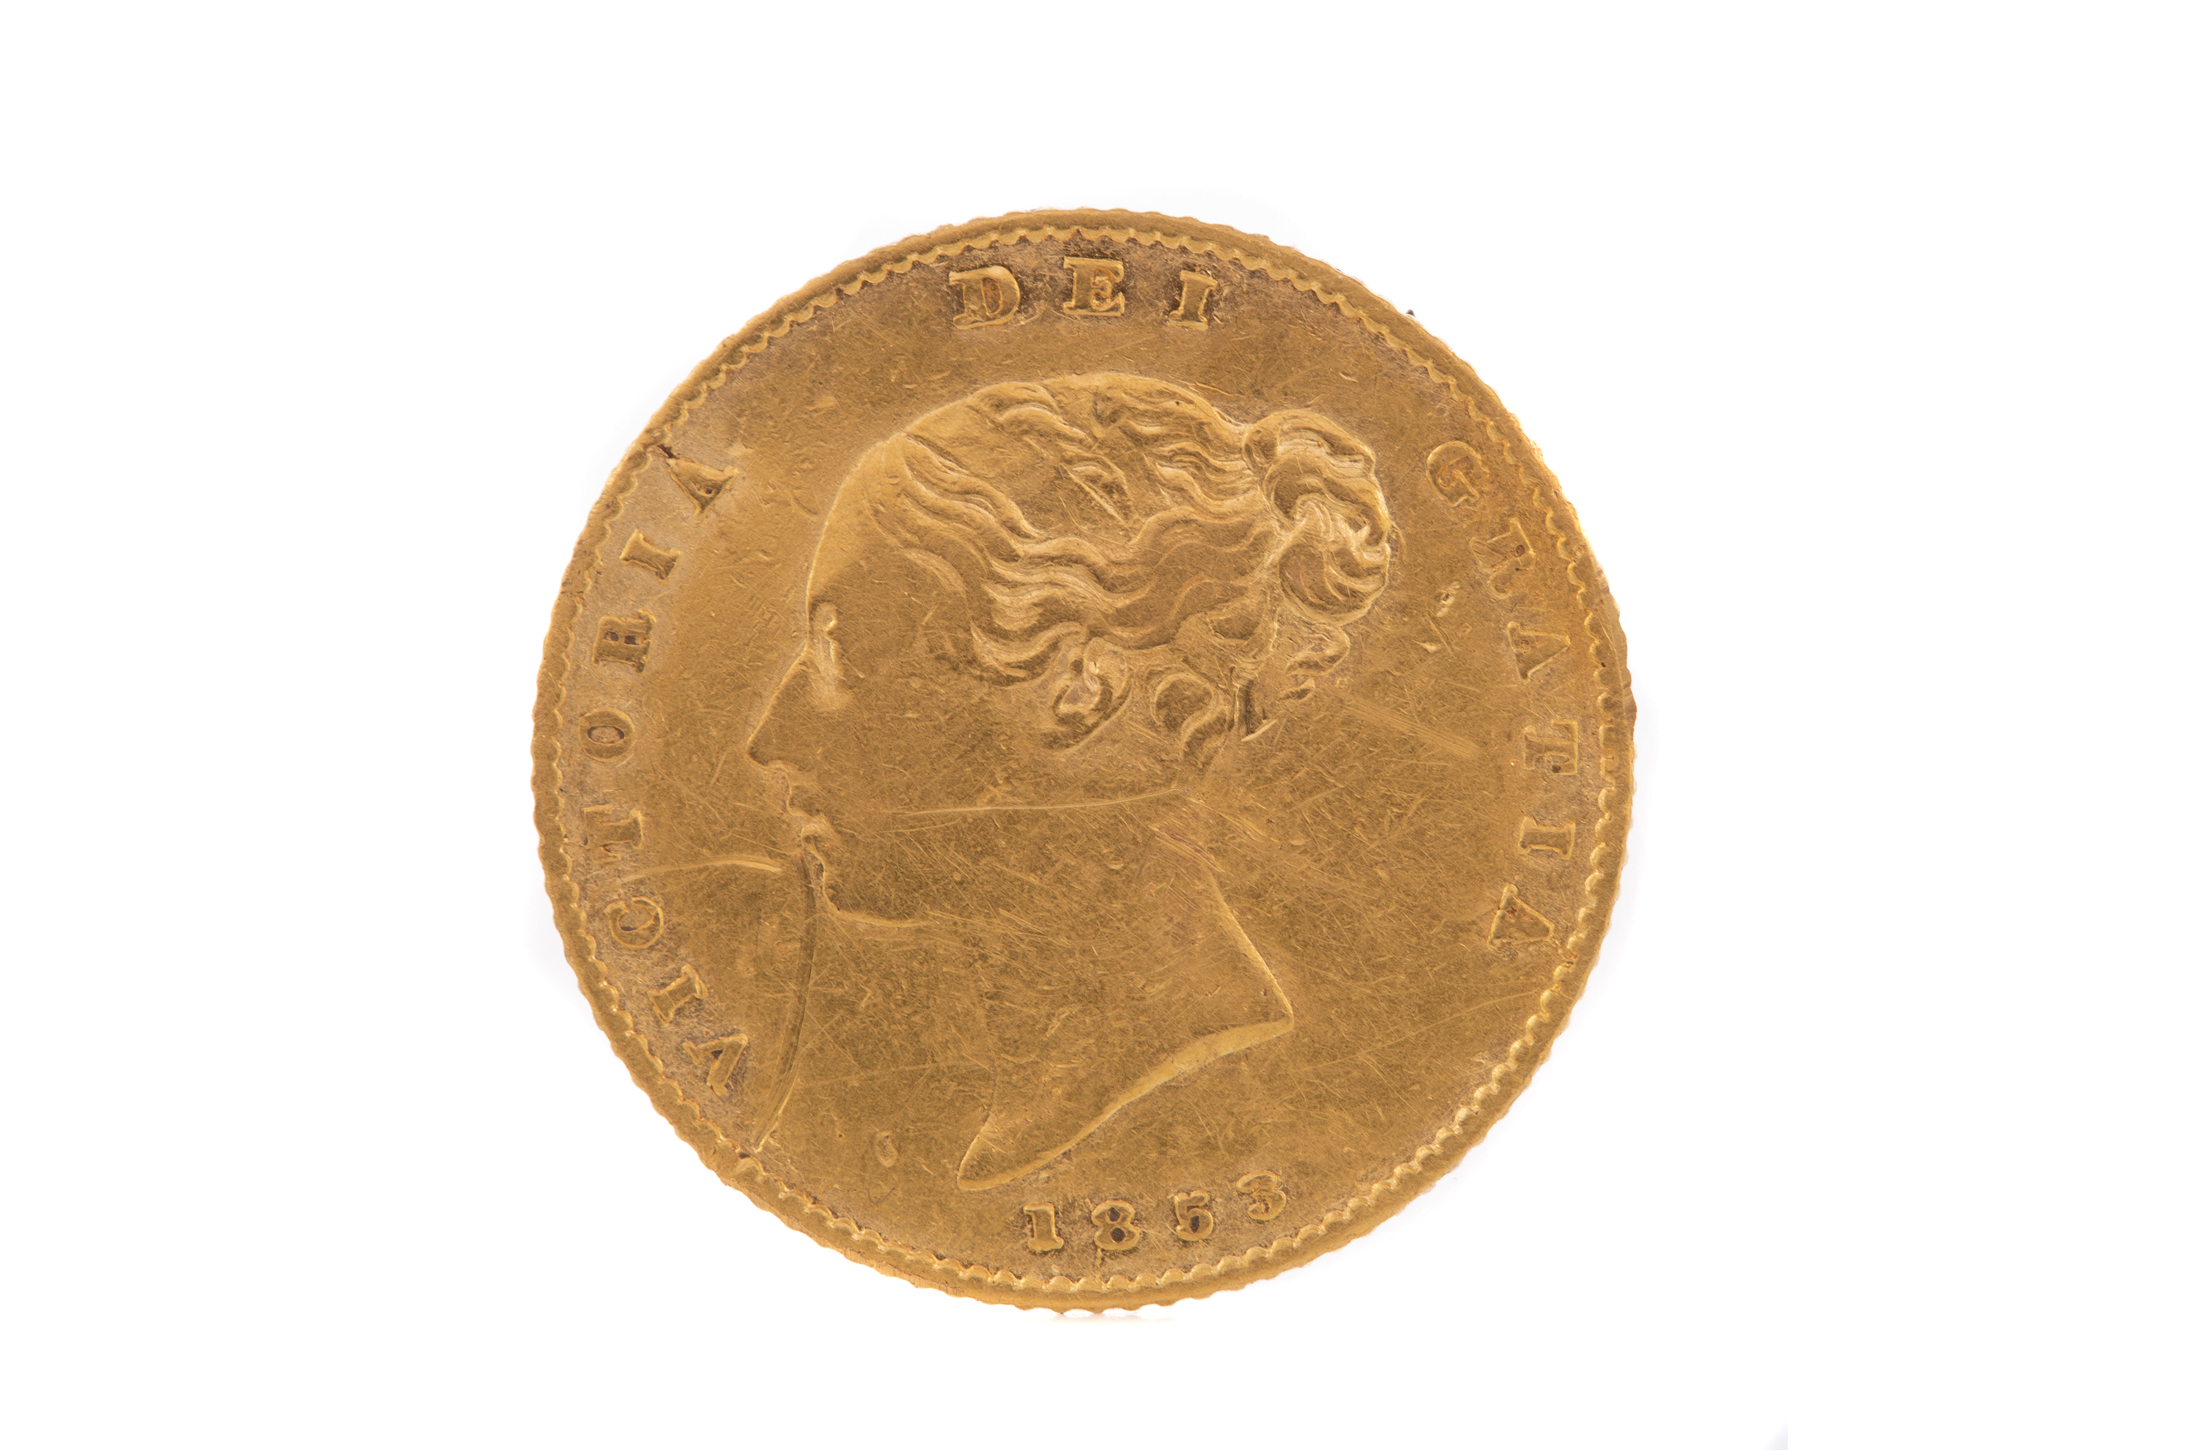 A VICTORIA GOLD HALF SOVEREIGN DATED 1853 - Image 2 of 2